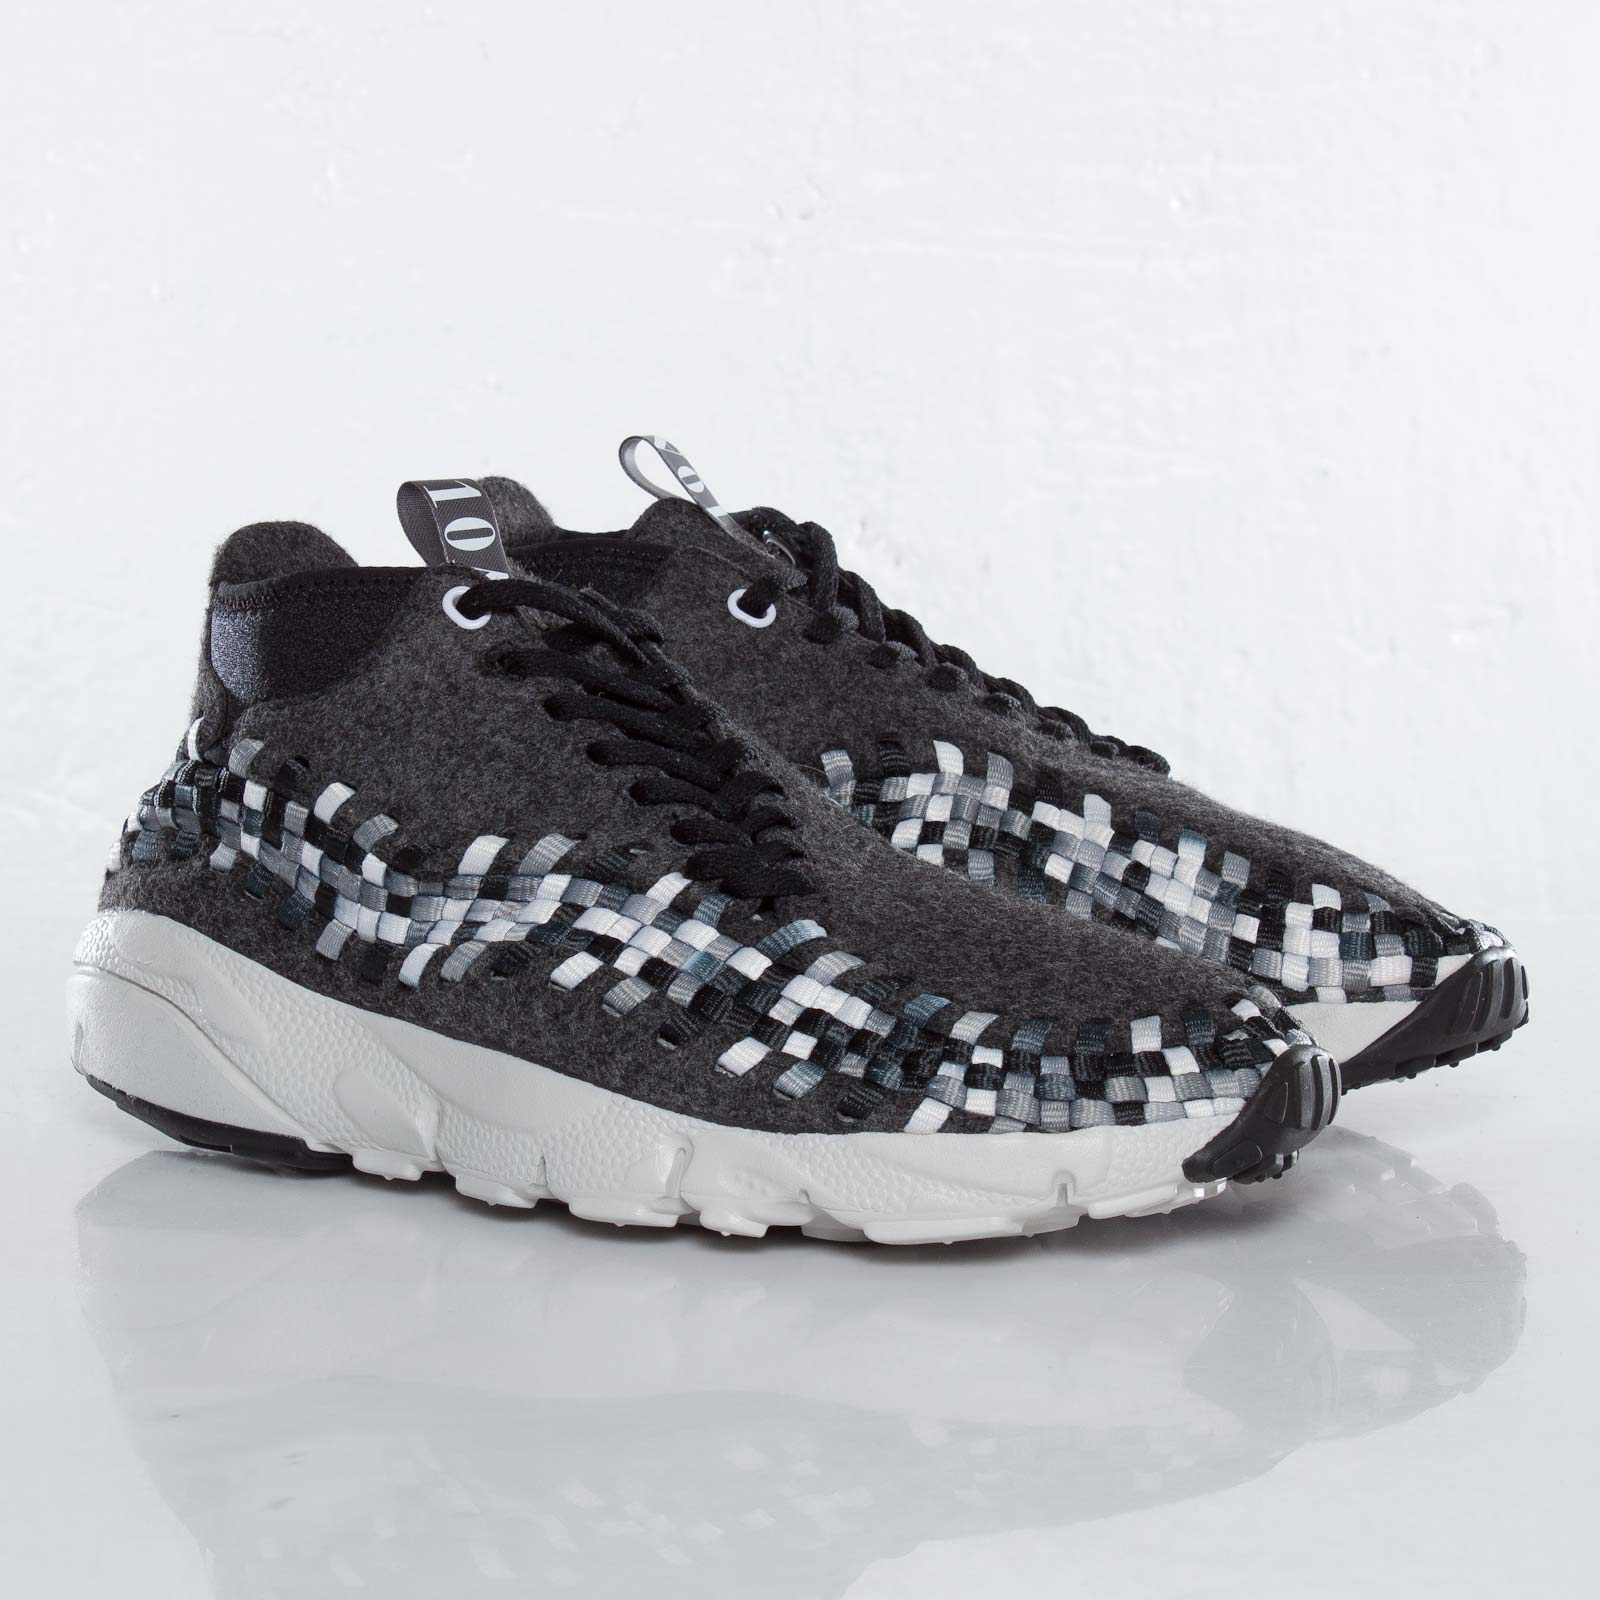 outlet store f40b6 b57a7 Nike Air Footscape Woven Chukka